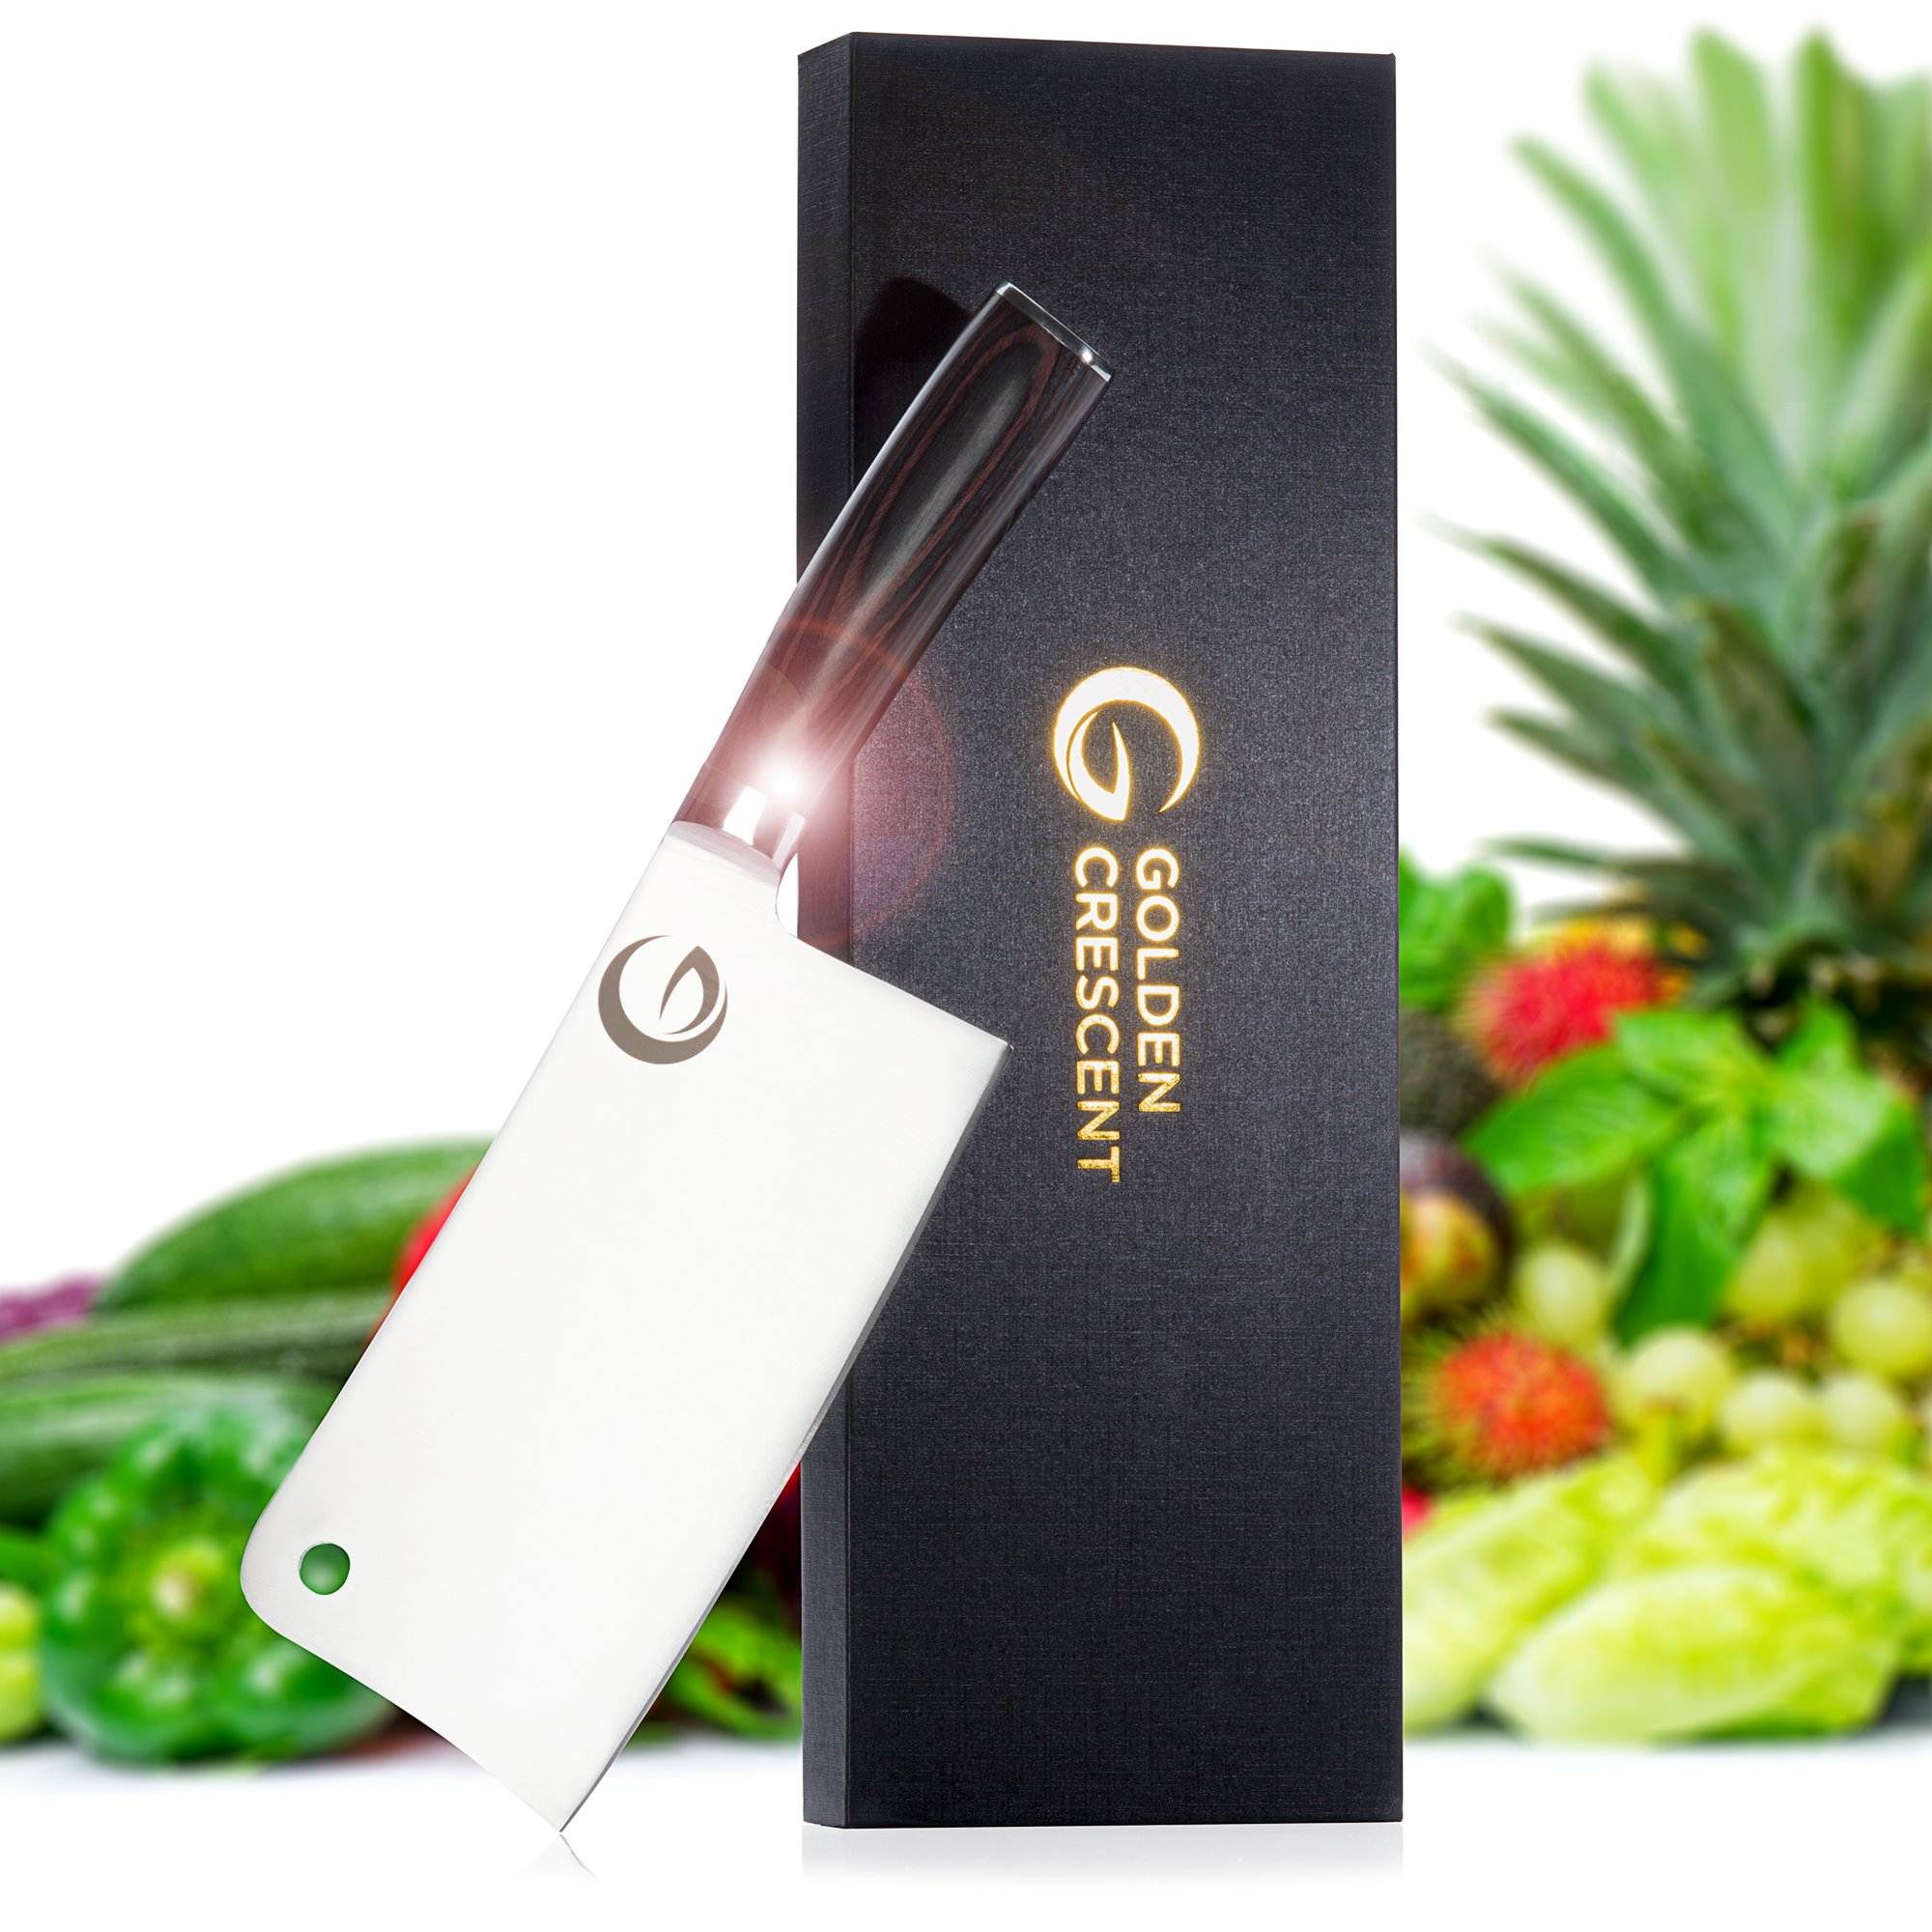 Professional 7inch Kitchen Cleaver by GoldenCrescent | High Carbon Stainless Steel | Heavy Duty Sharp Butcher Knife for Chopping & Slicing | Excellent for Meat, Fish, Vegetables & Fruit